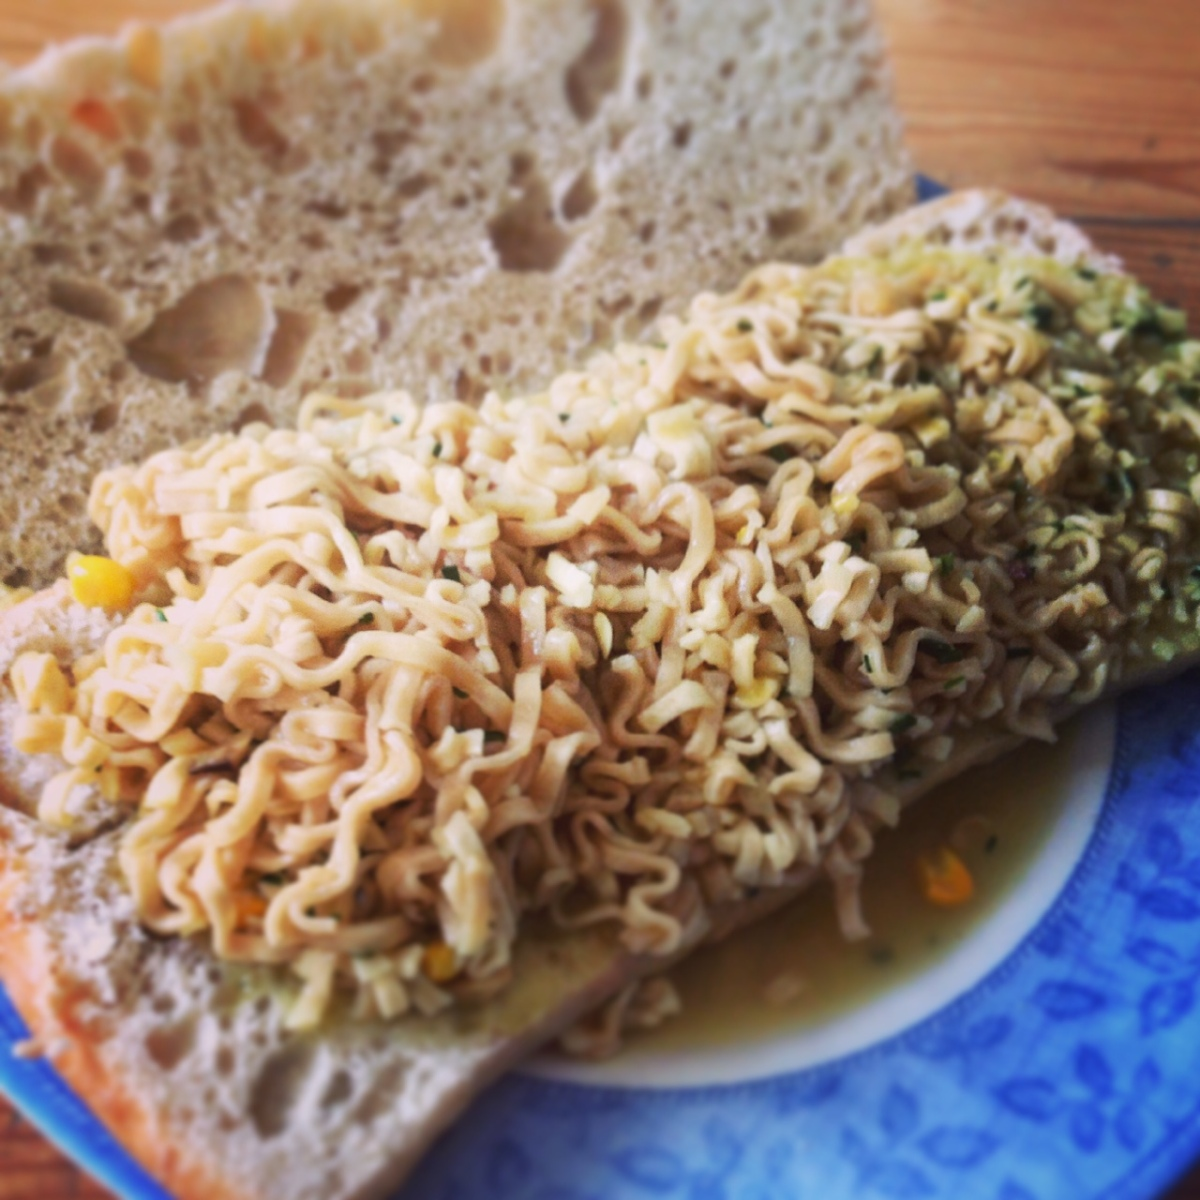 It's The Pot Noodle Sandwich!